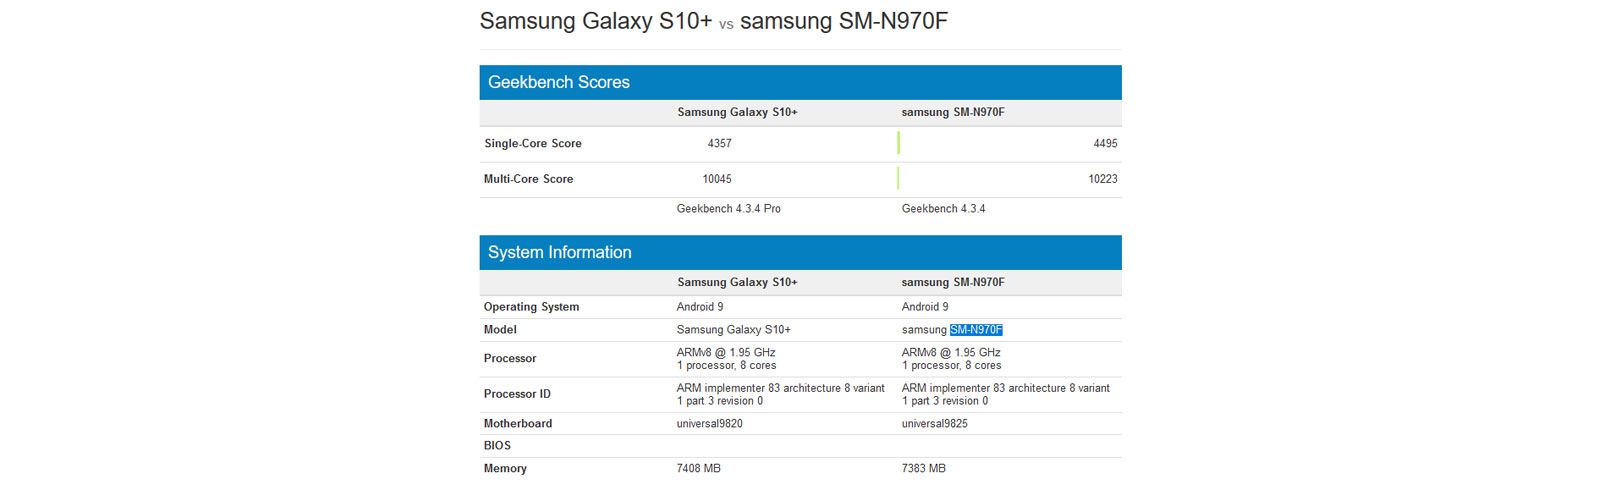 Galaxy Note 10+ appears on Geekbench as well